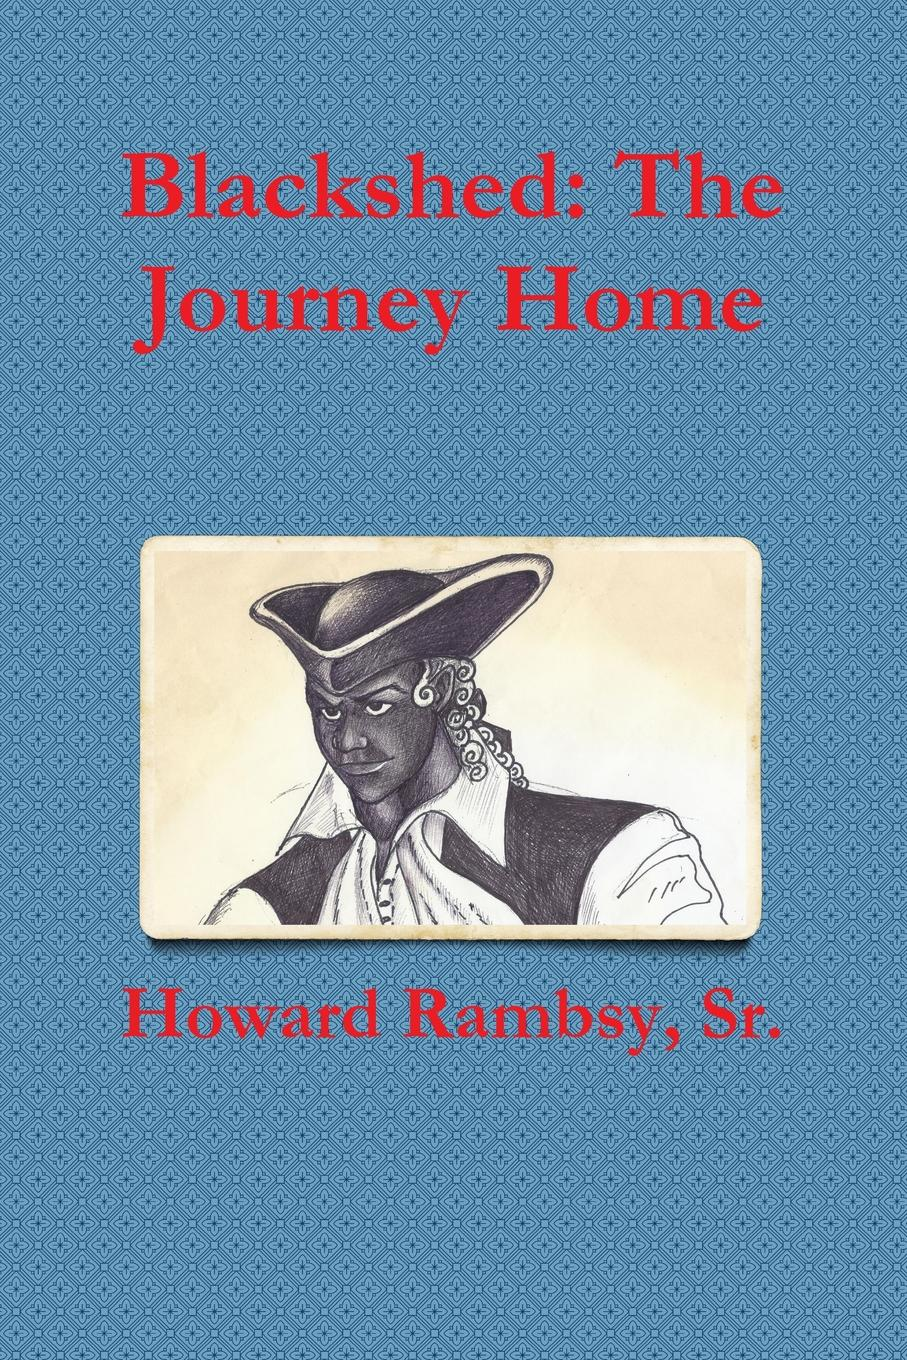 Sr. Howard Rambsy Blackshed. The Journey Home journey to athens intermediate the united states olympic committee activity book